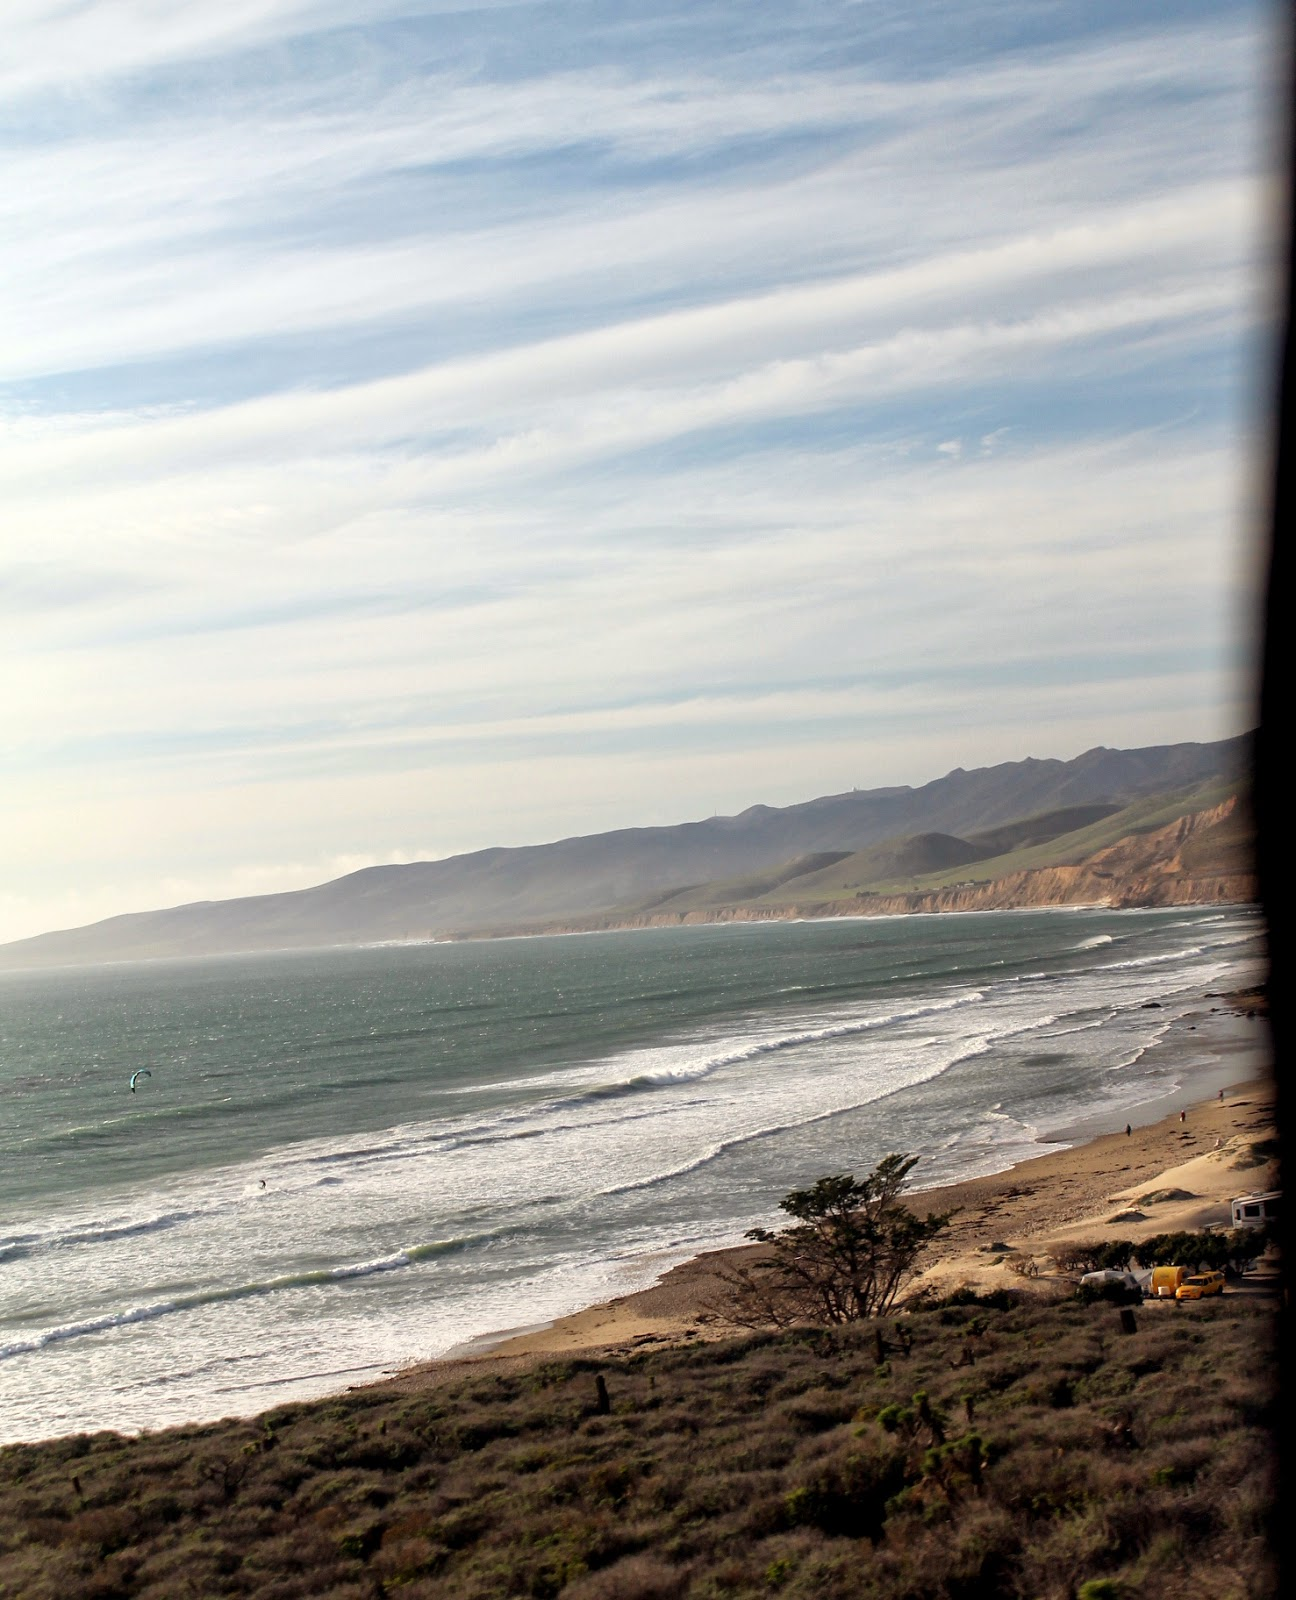 Amtrak Coast Starlight 14: THE ADVENTURES OF TEAM DANGER: Riding The Rails On The